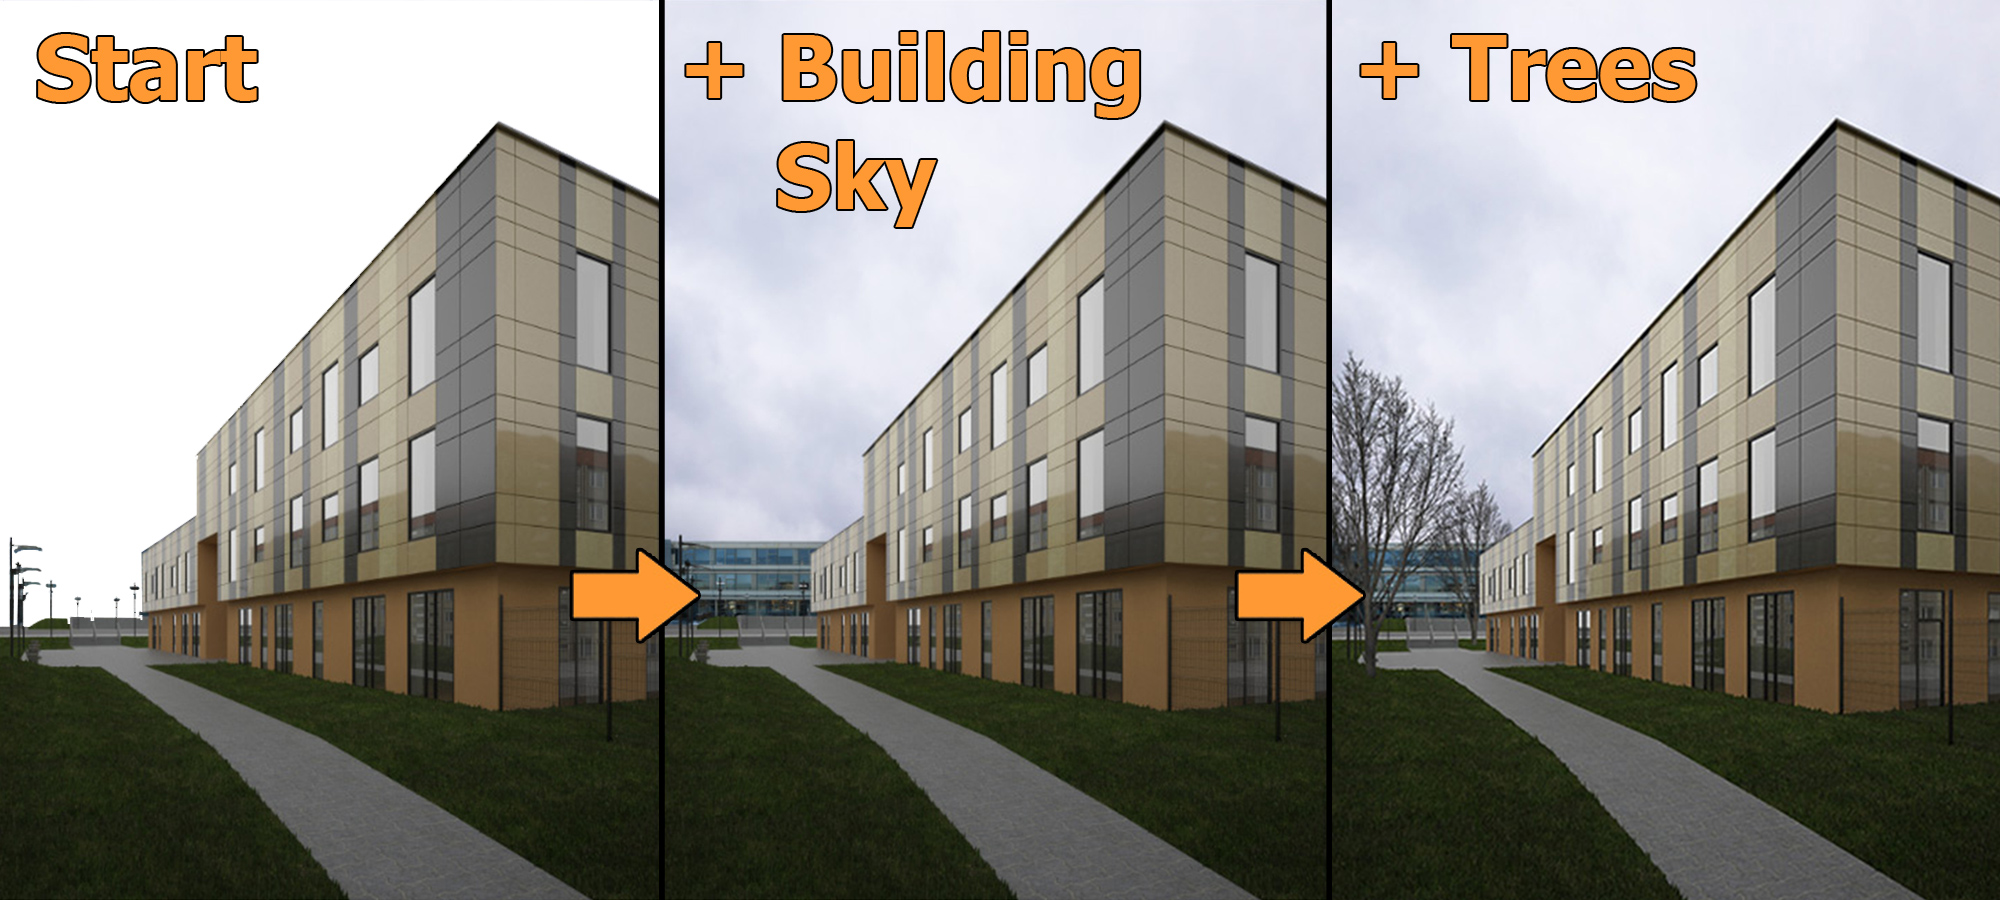 Architektur Rendering 3ds Max + Photoshop Tutorial: Architektur Außenszene Mit Staffage Objekten Aufwerten